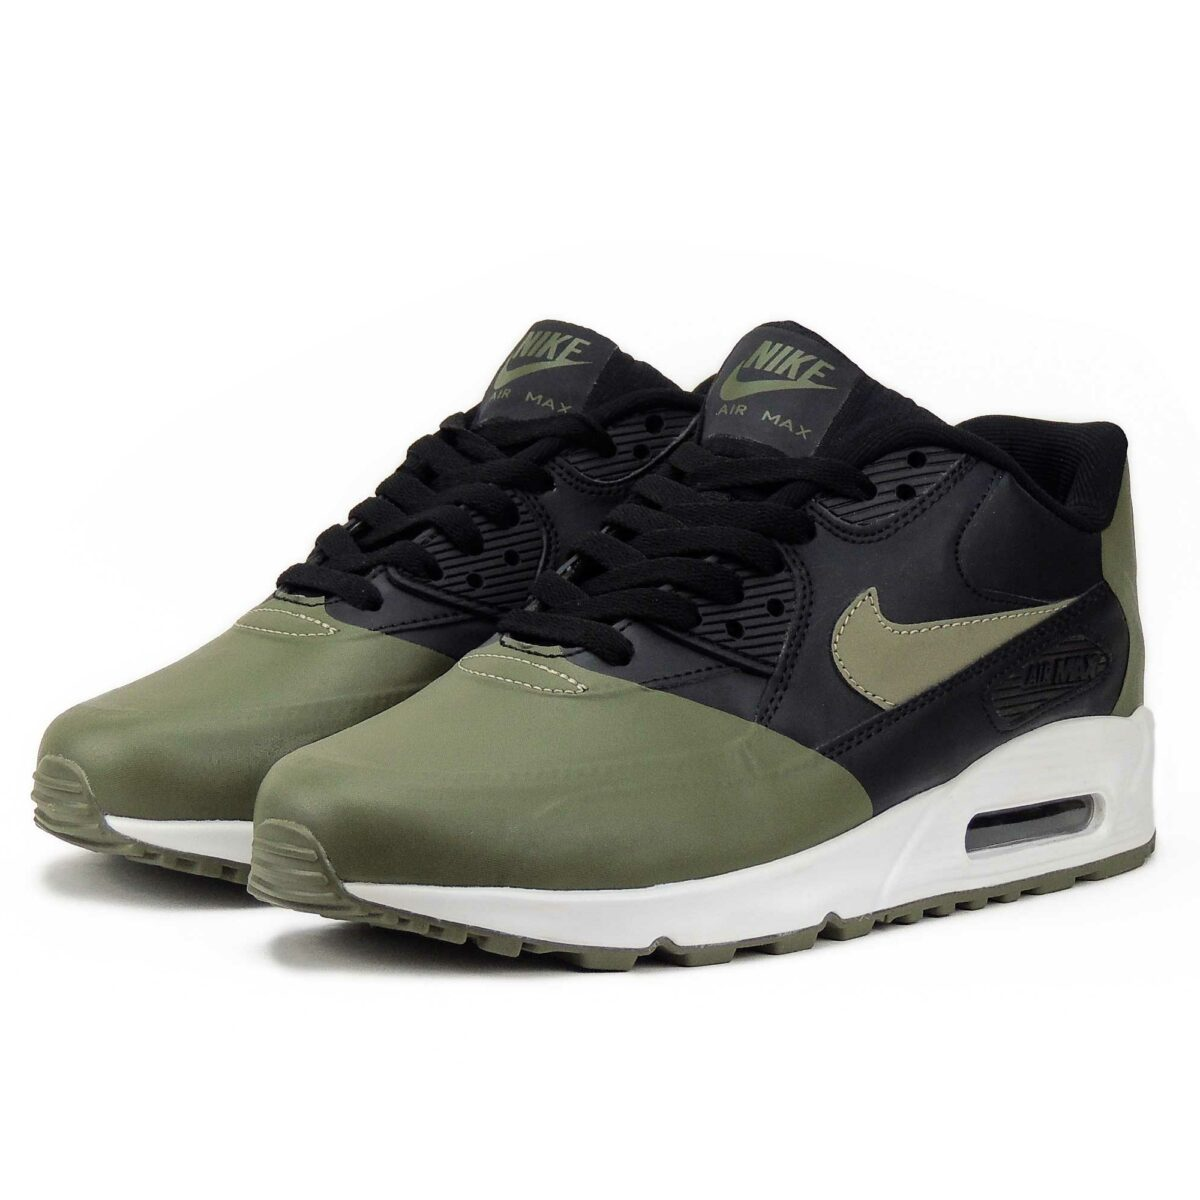 nike air max 90 premium se black green 858954_005 купить